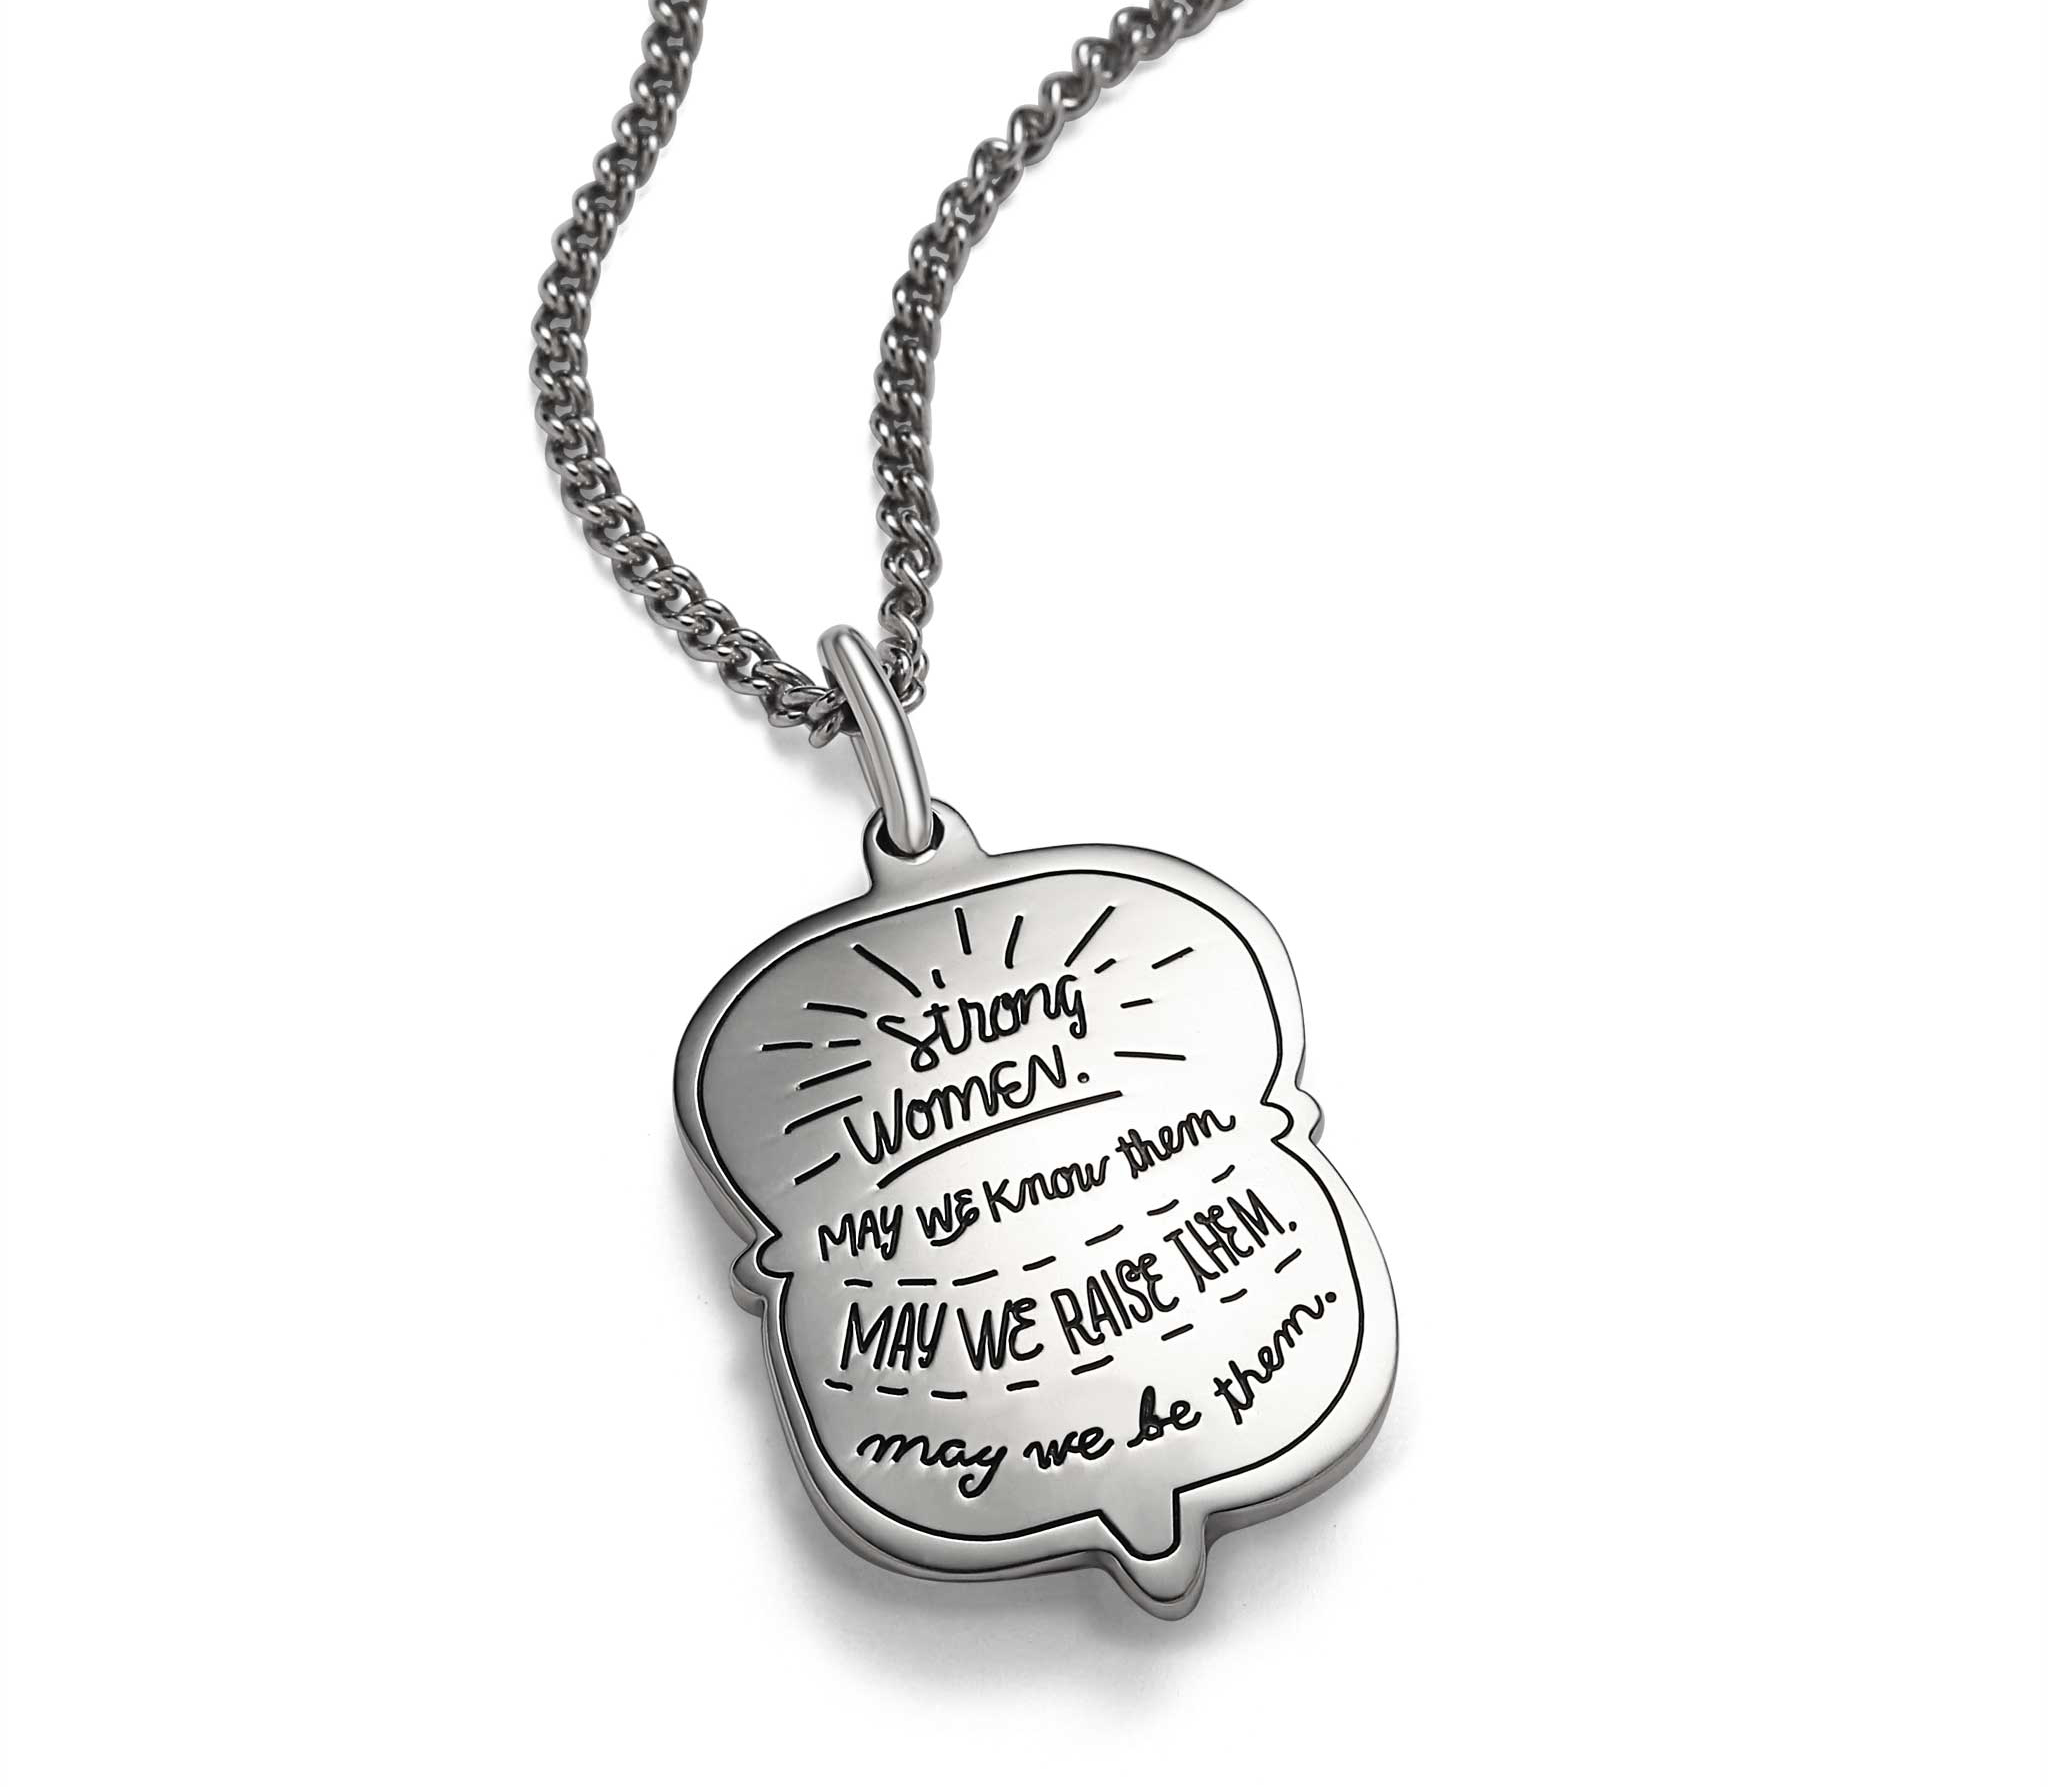 Sterling silver inspirational irregualr shaped necklace with the quotation: Strong Women. May we know them. May we raise them. May we be them.